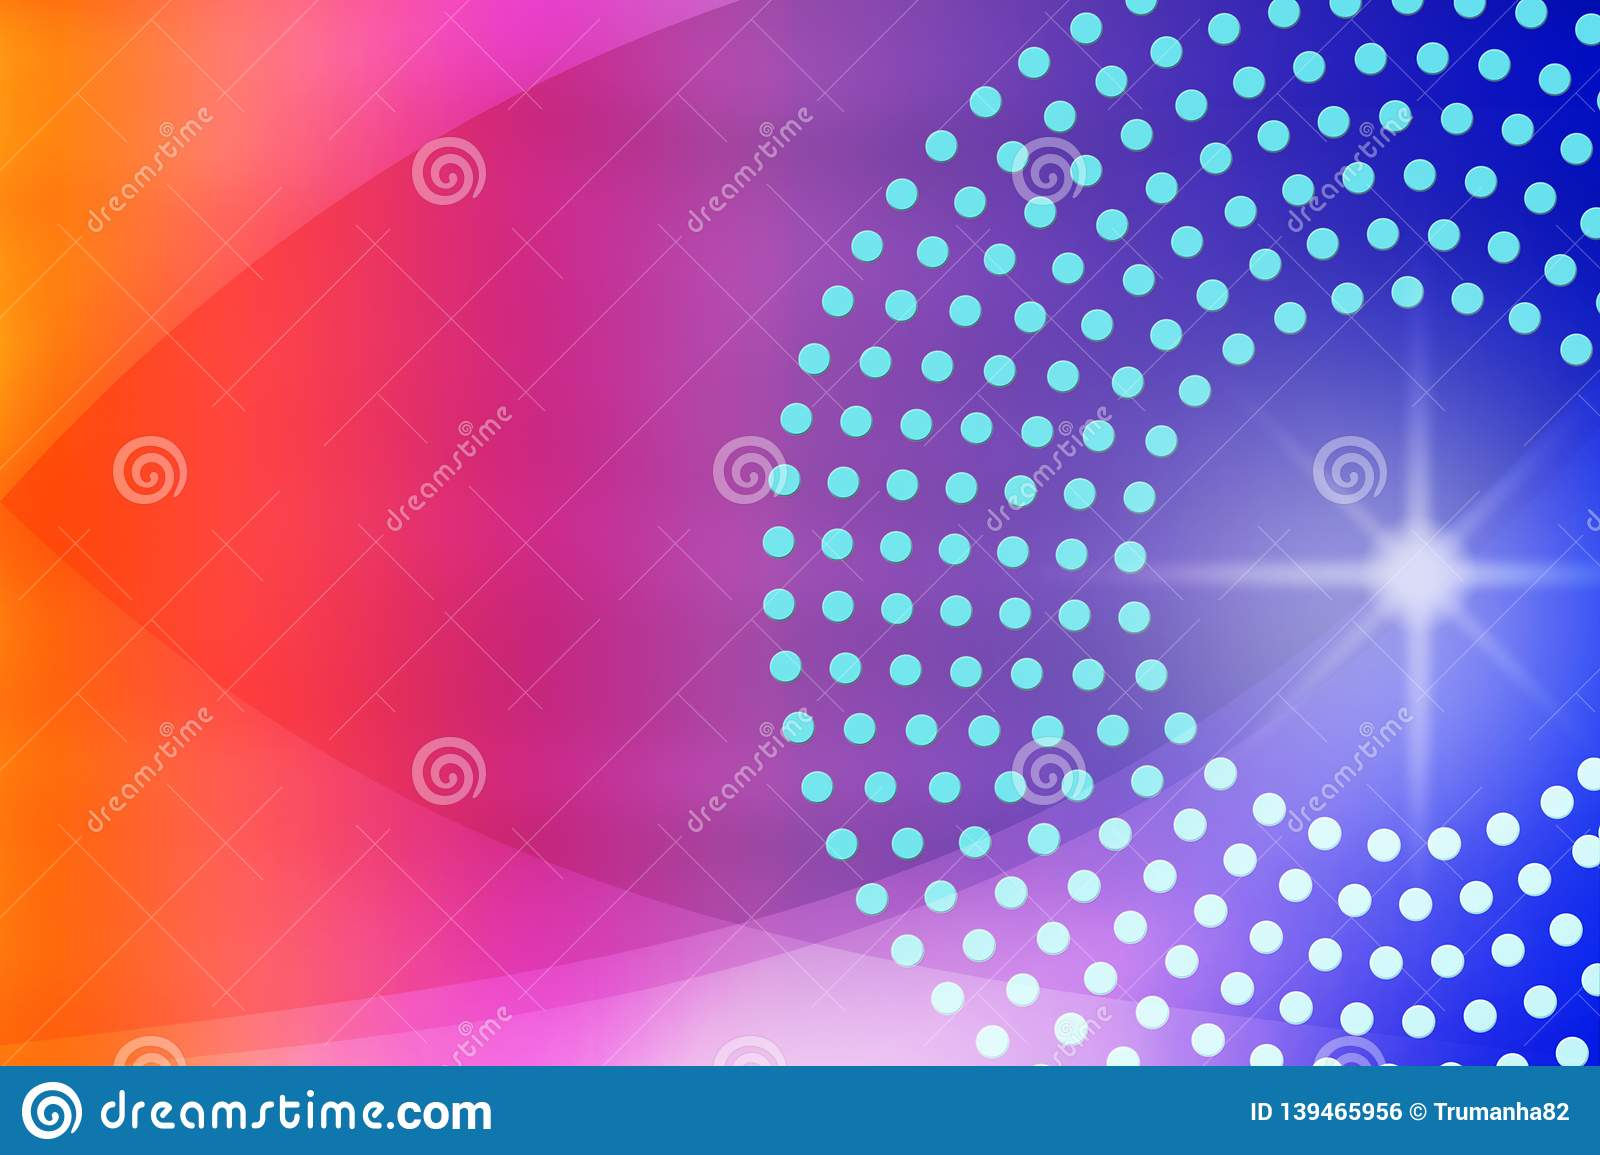 Shiny Sparkle, Circles, Dots and Curves in Blurred Blue, Purple, Pink and Red Background